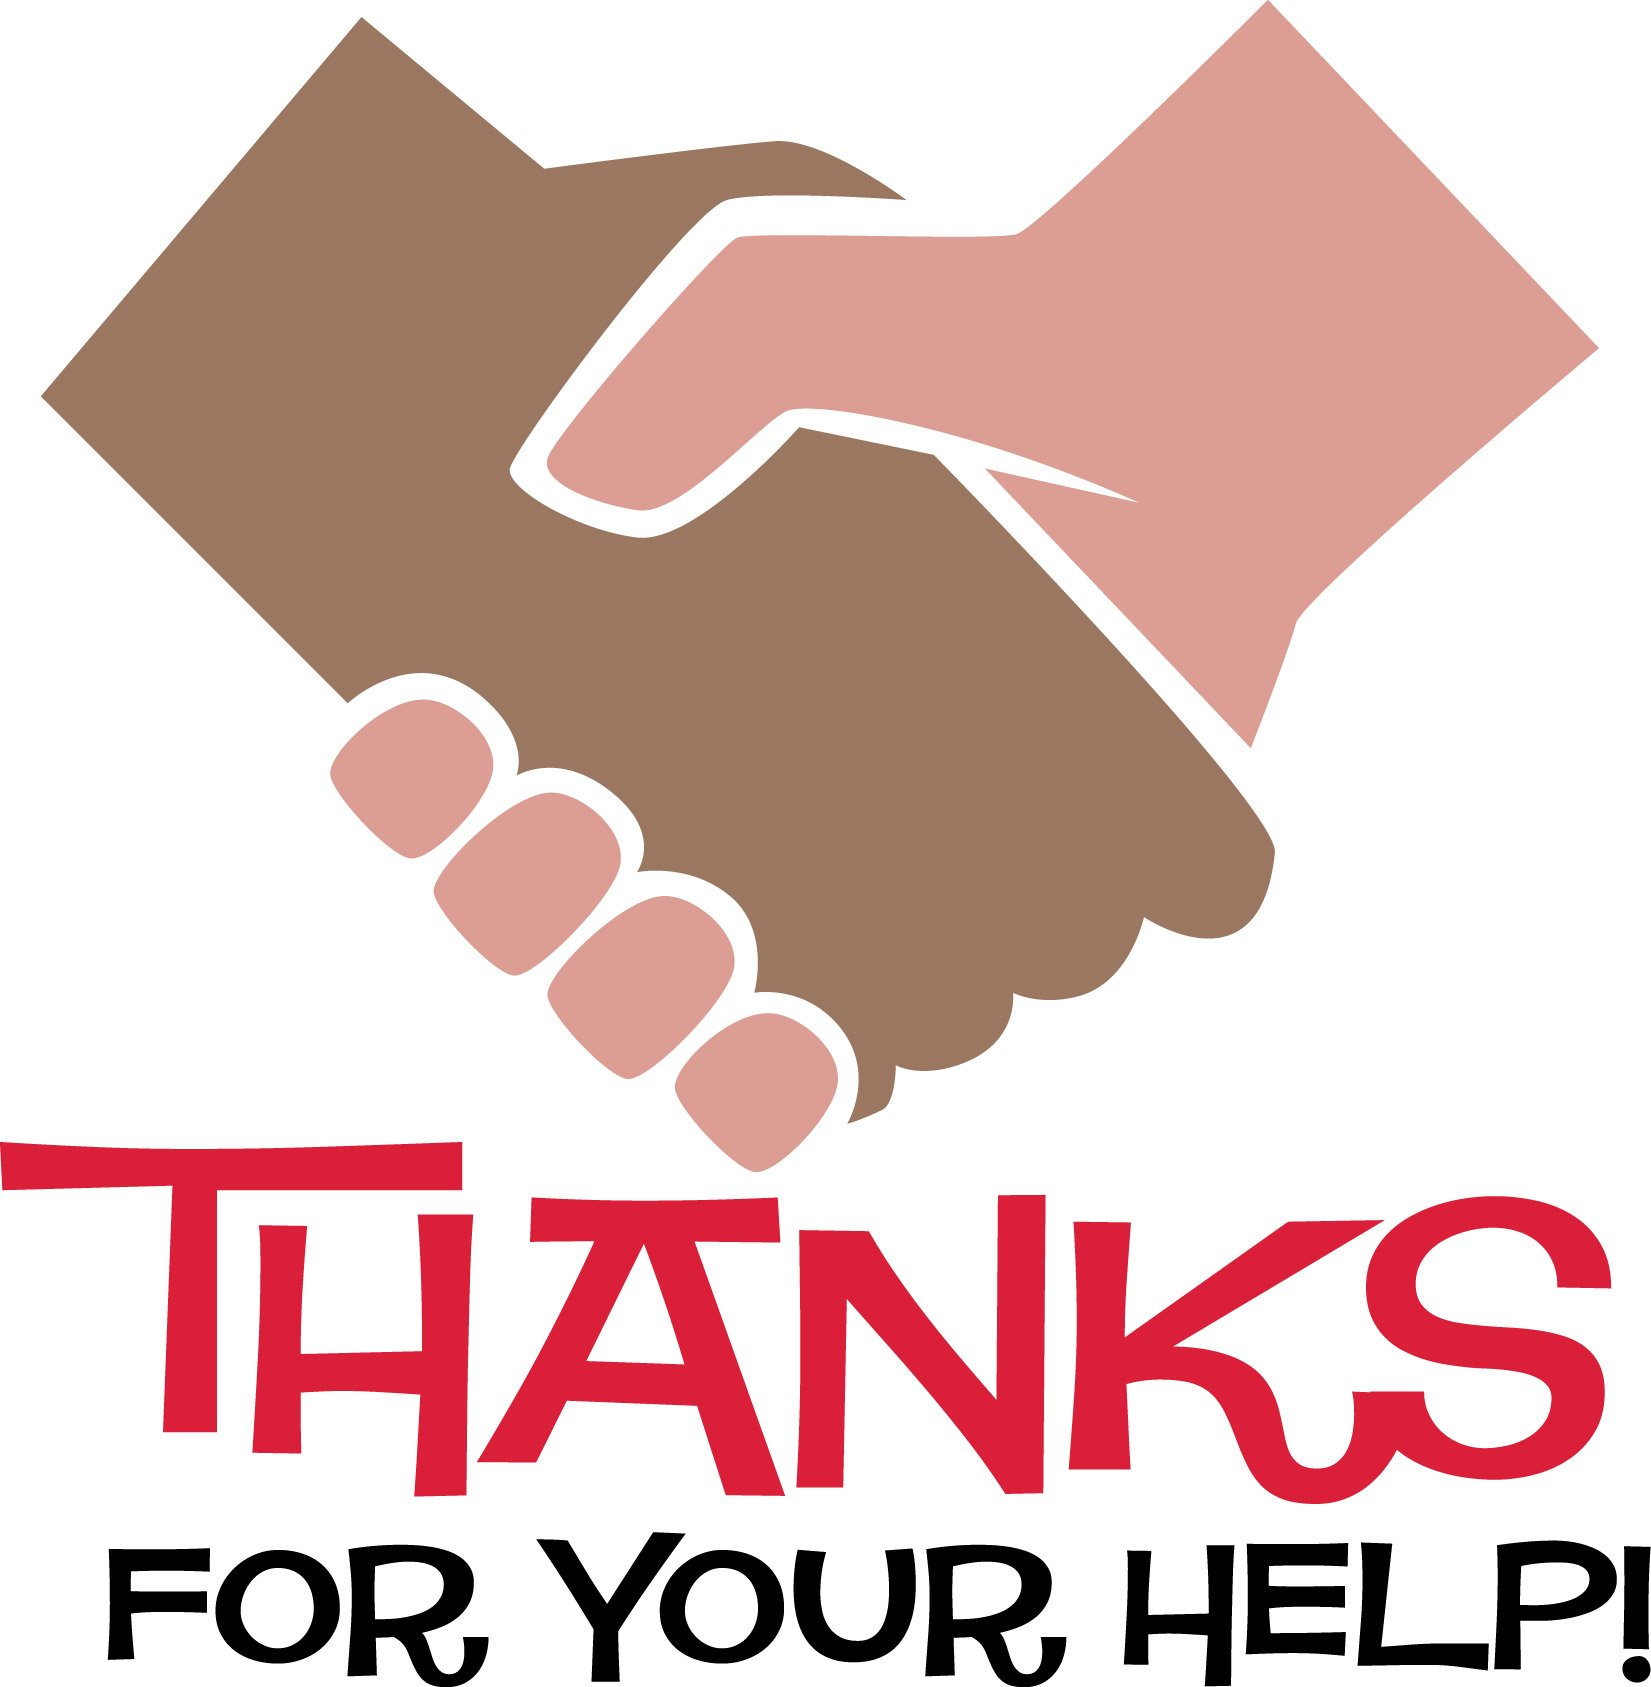 how to say thank you for your help